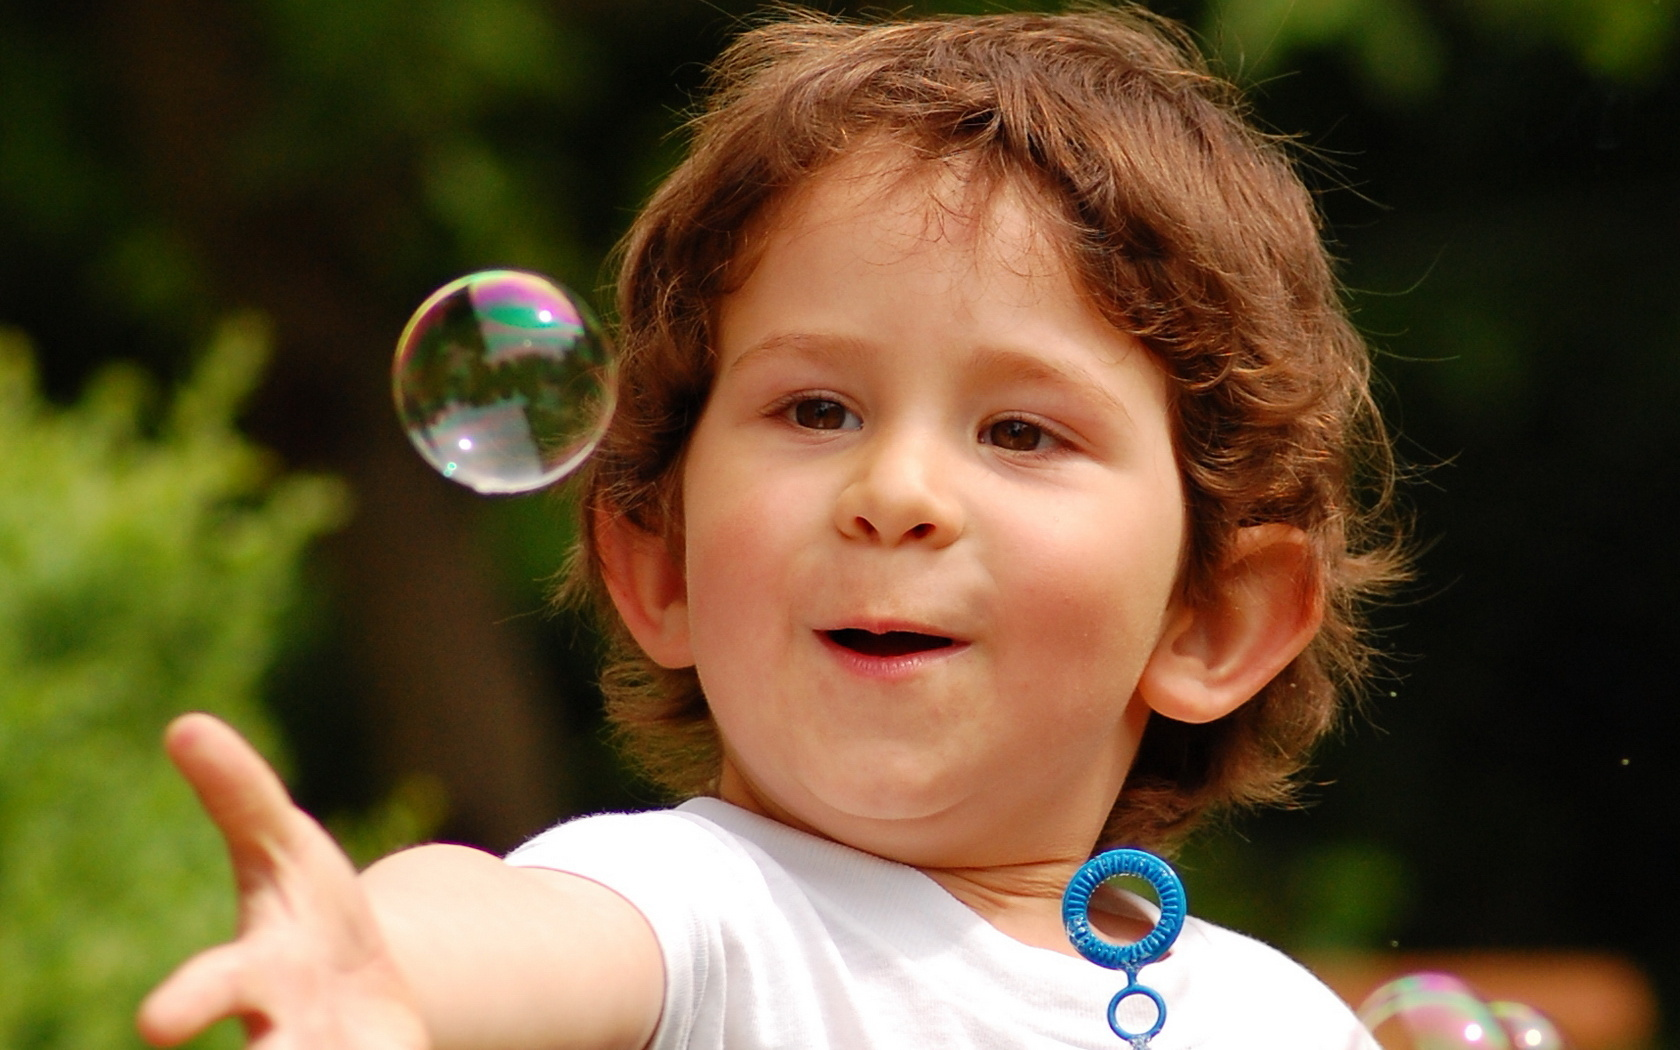 Https Www Bhmpics Com View Happy Child Touching Bubble Wide Html